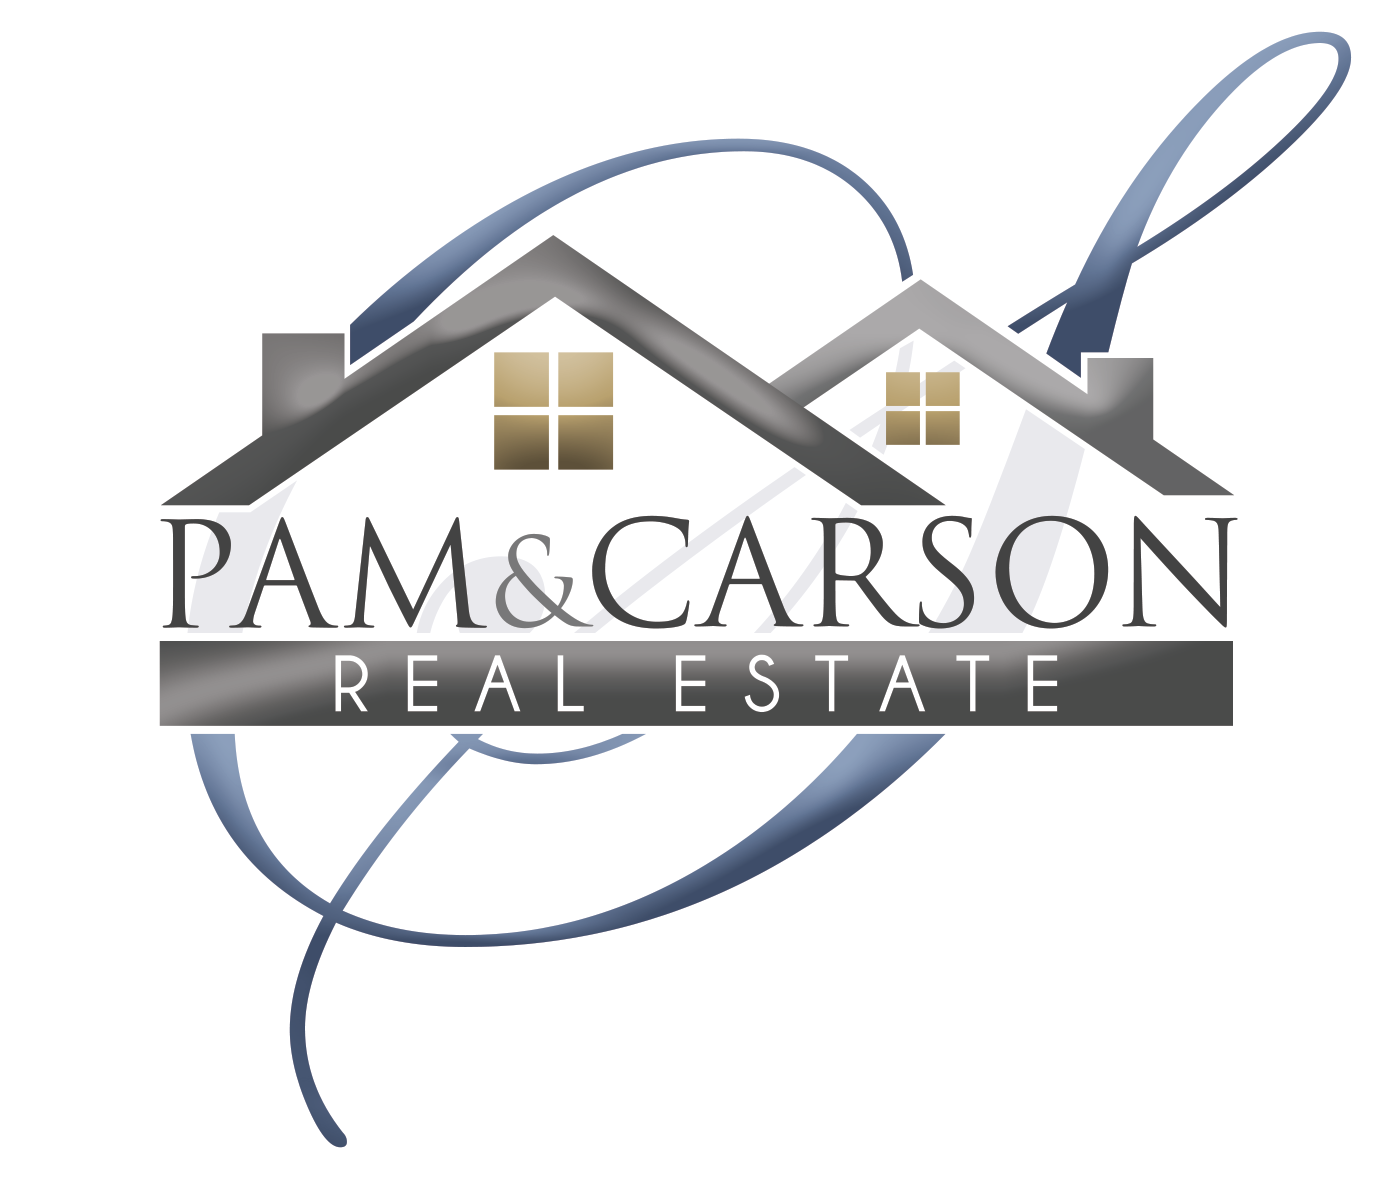 Pam and Carson Real Estate